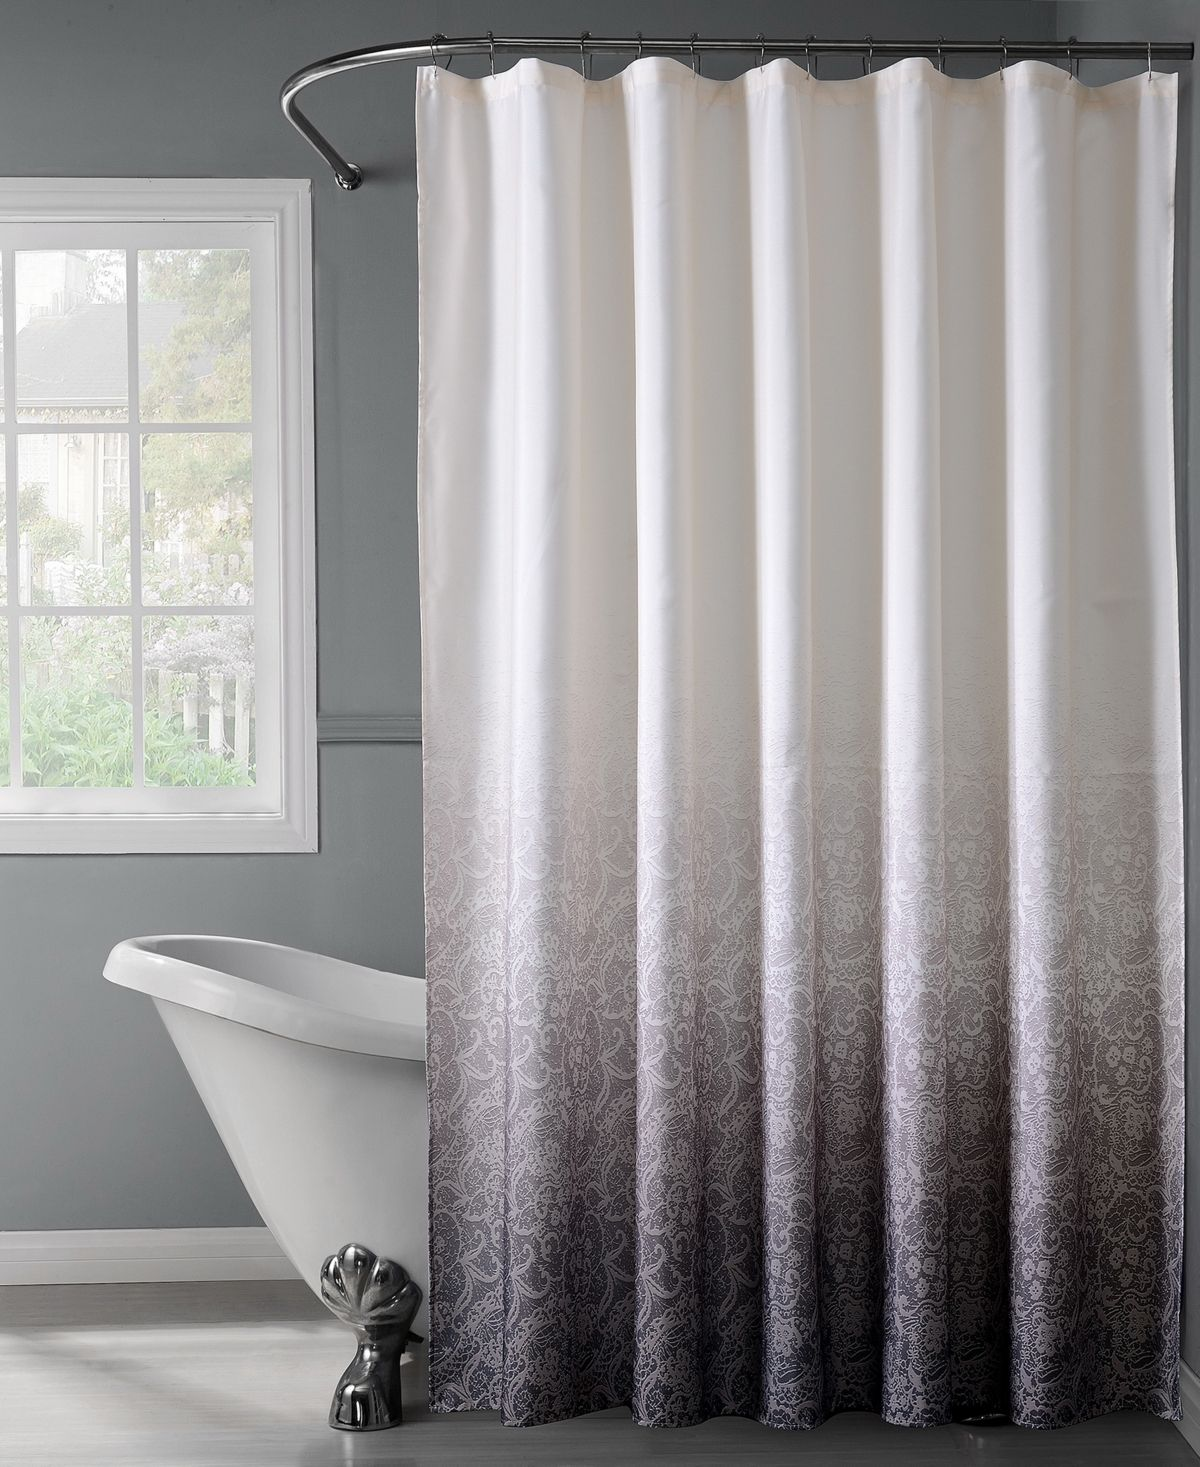 Bath Bliss Lace Ombre Shower Curtain White Black White Shower Curtain Shower Curtain